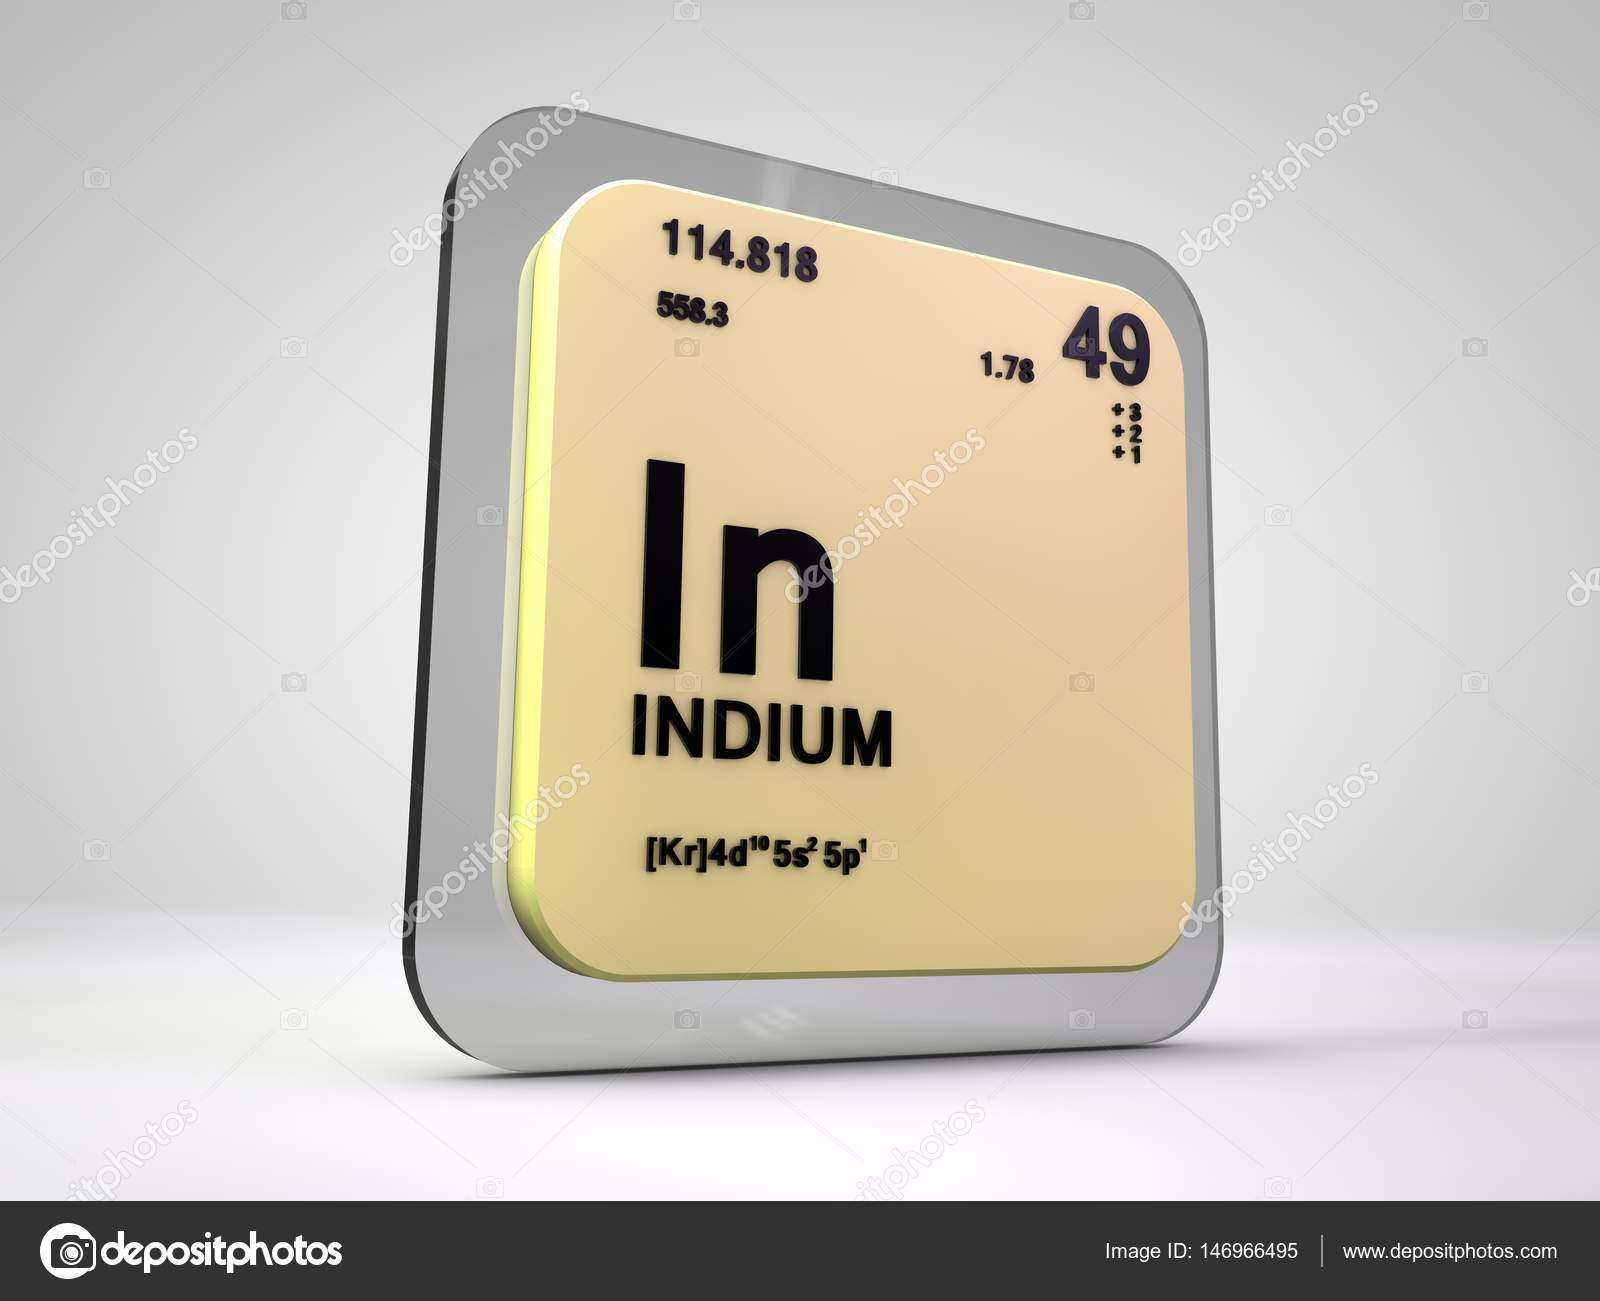 Indium in chemical element periodic table 3d render stock indium in chemical element periodic table 3d render photo by viking75 gamestrikefo Gallery